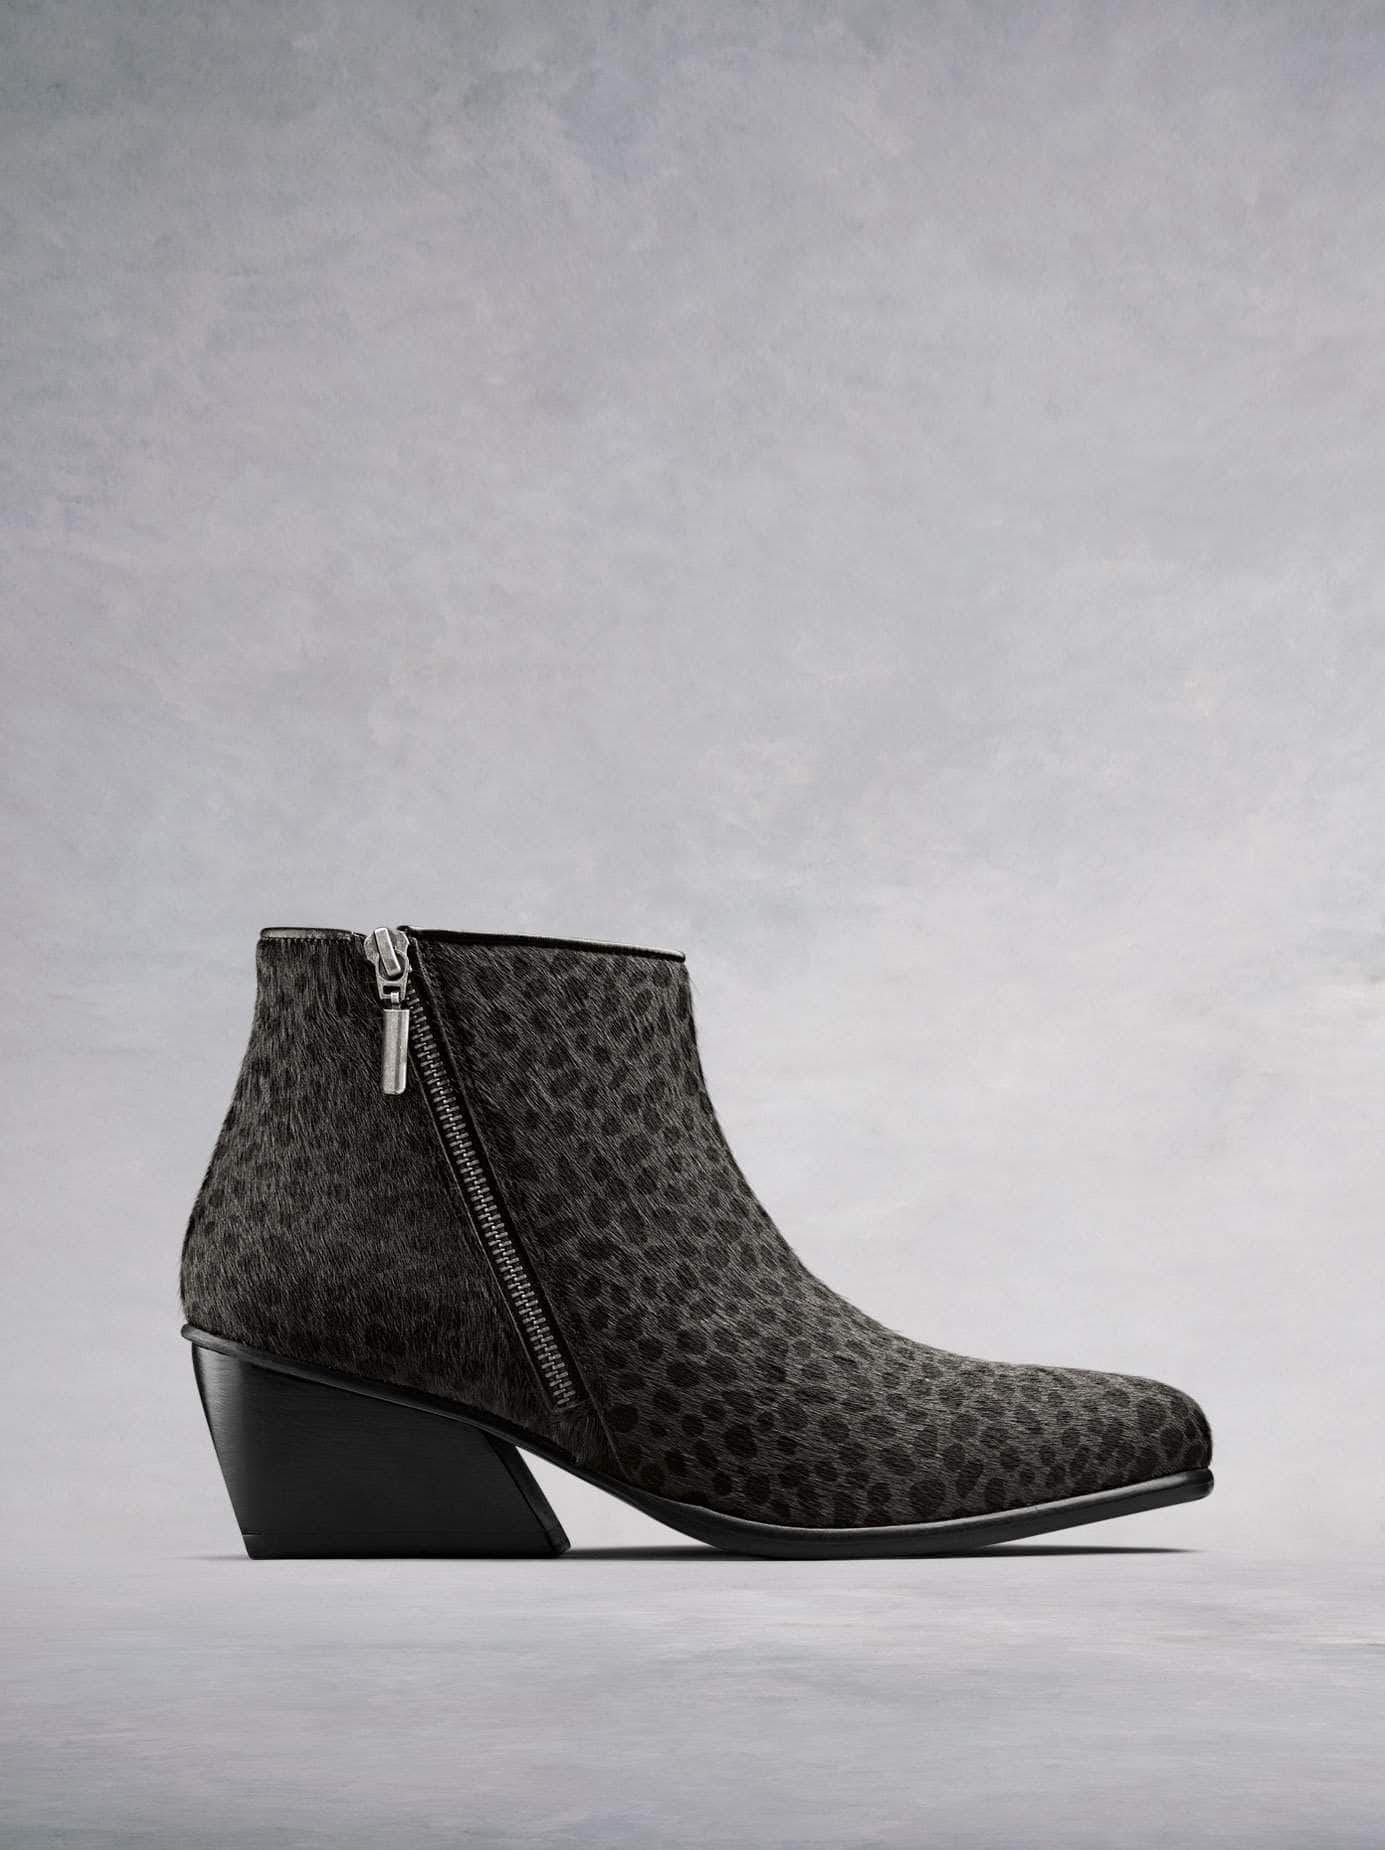 Renata, our on-trend ankle boot with angular heel and diagonal zip in grey leopard hair leather. Stand-out style. Available in our standard or wide fit.